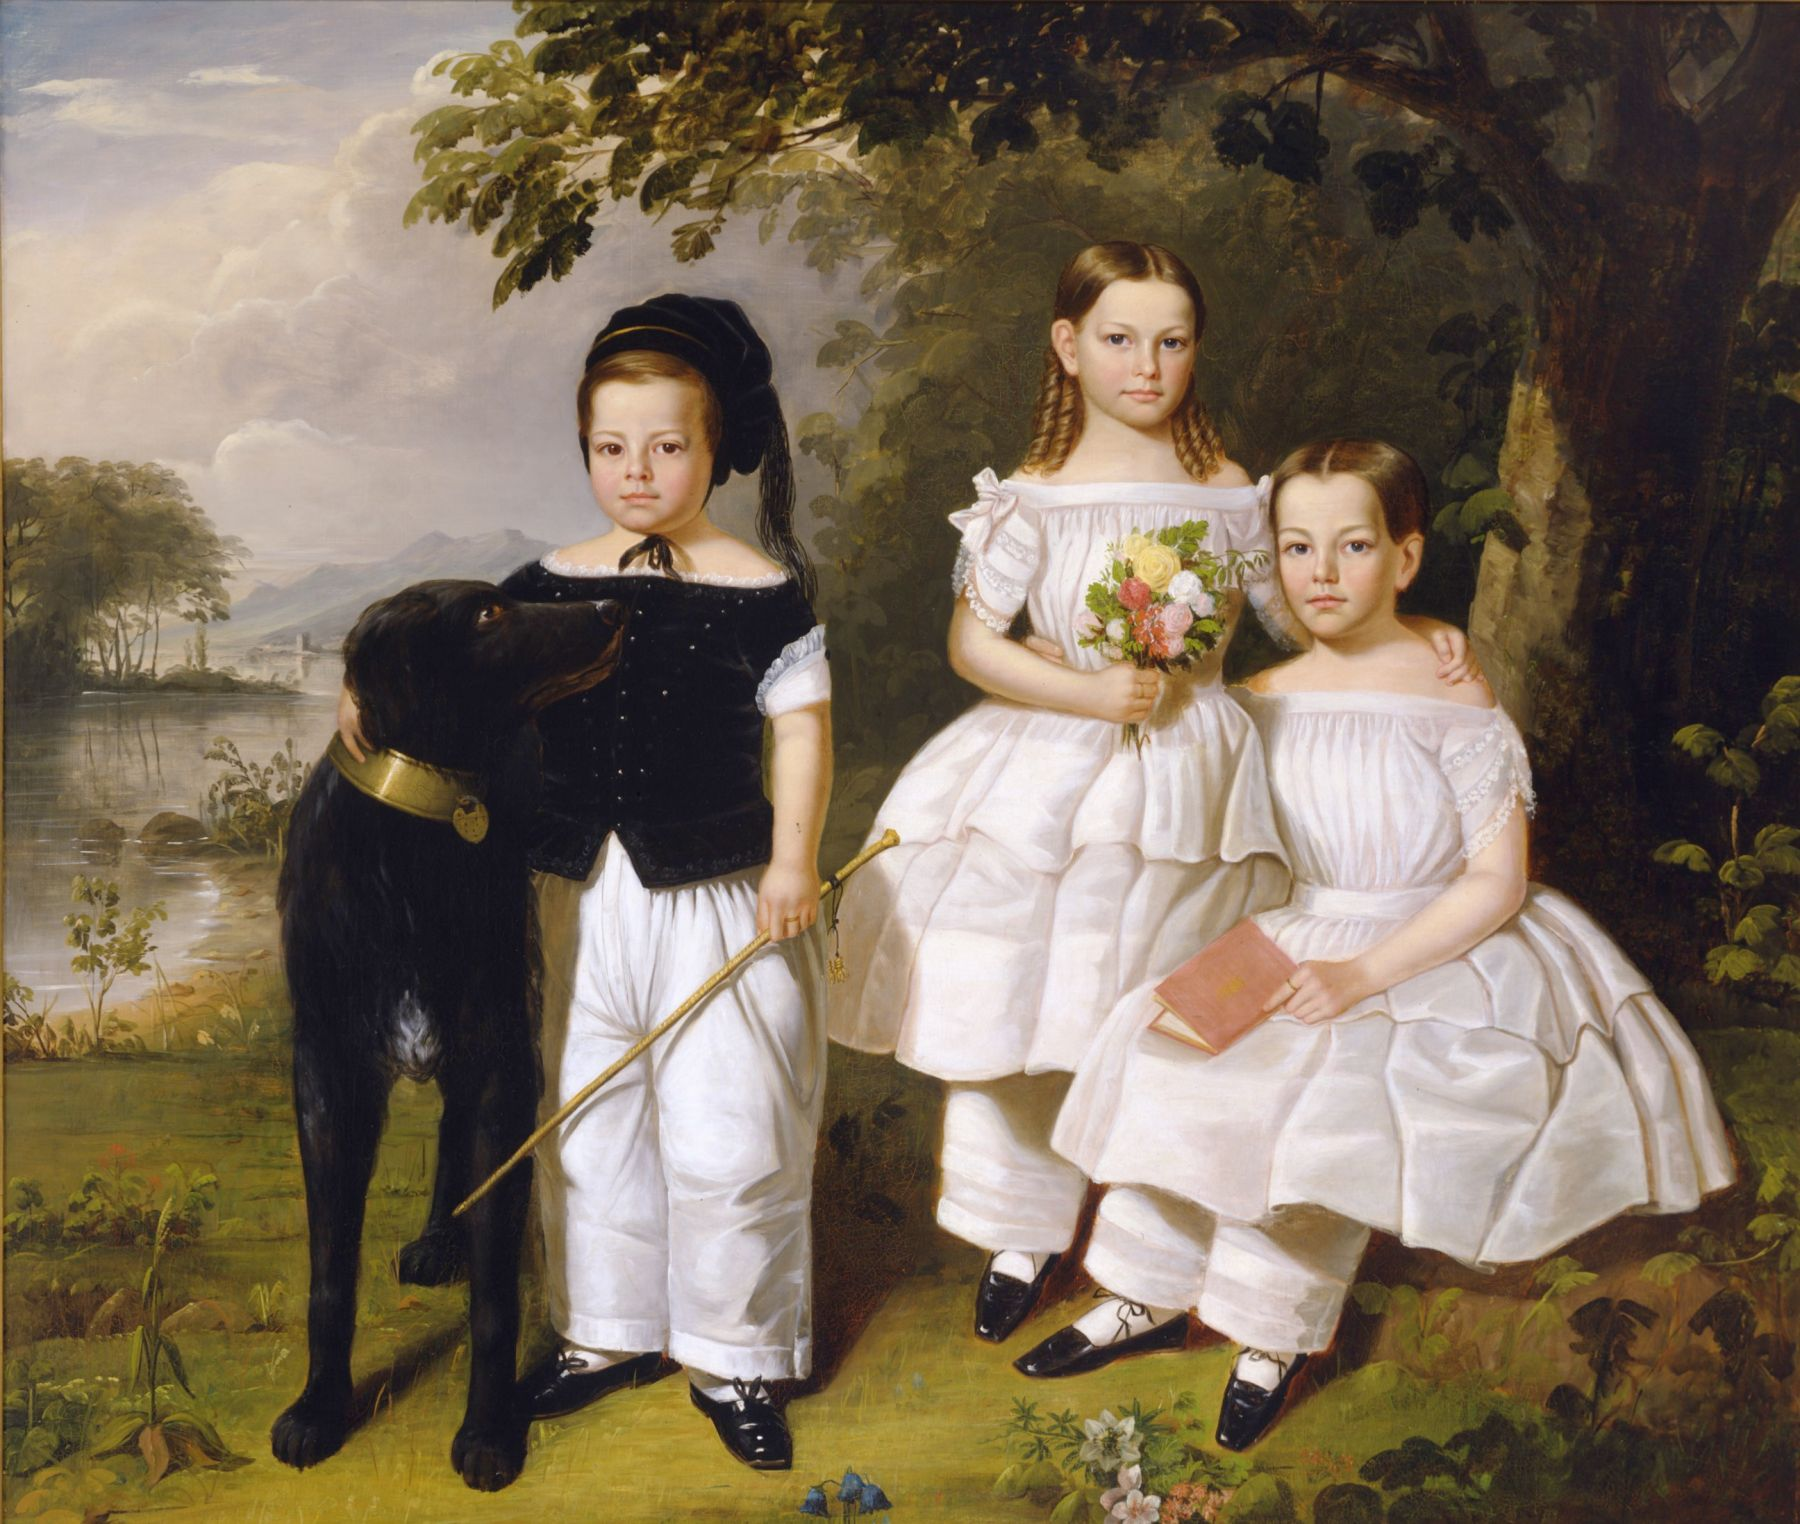 William R. Hamilton (1795-1879), The Three Odell Children, Newburgh, New York, about 1846-52